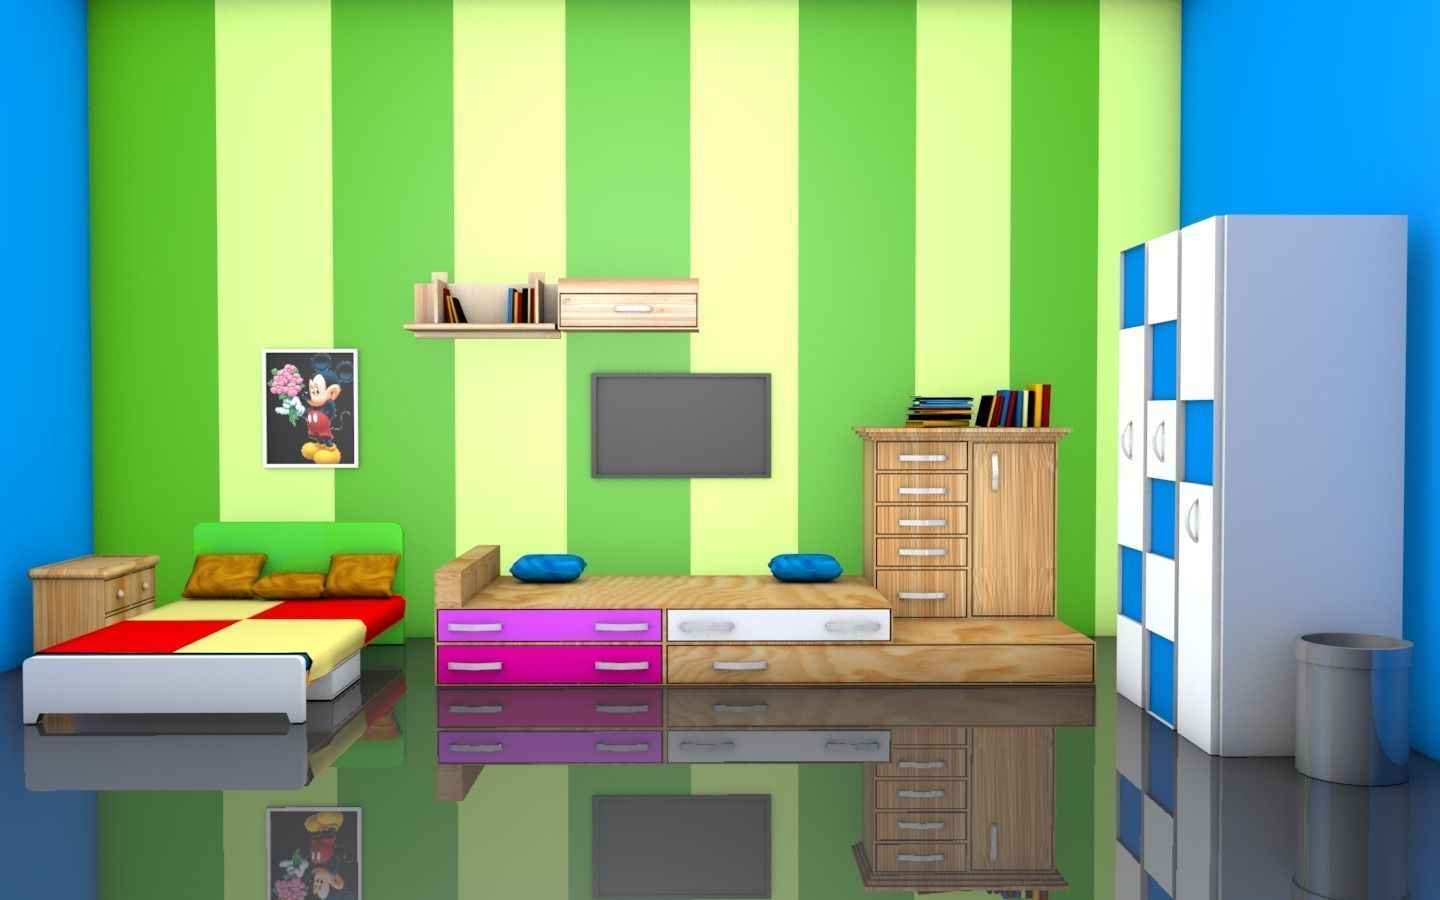 Kids Bedroom 3d Model kids room interior 3d model | cgtrader